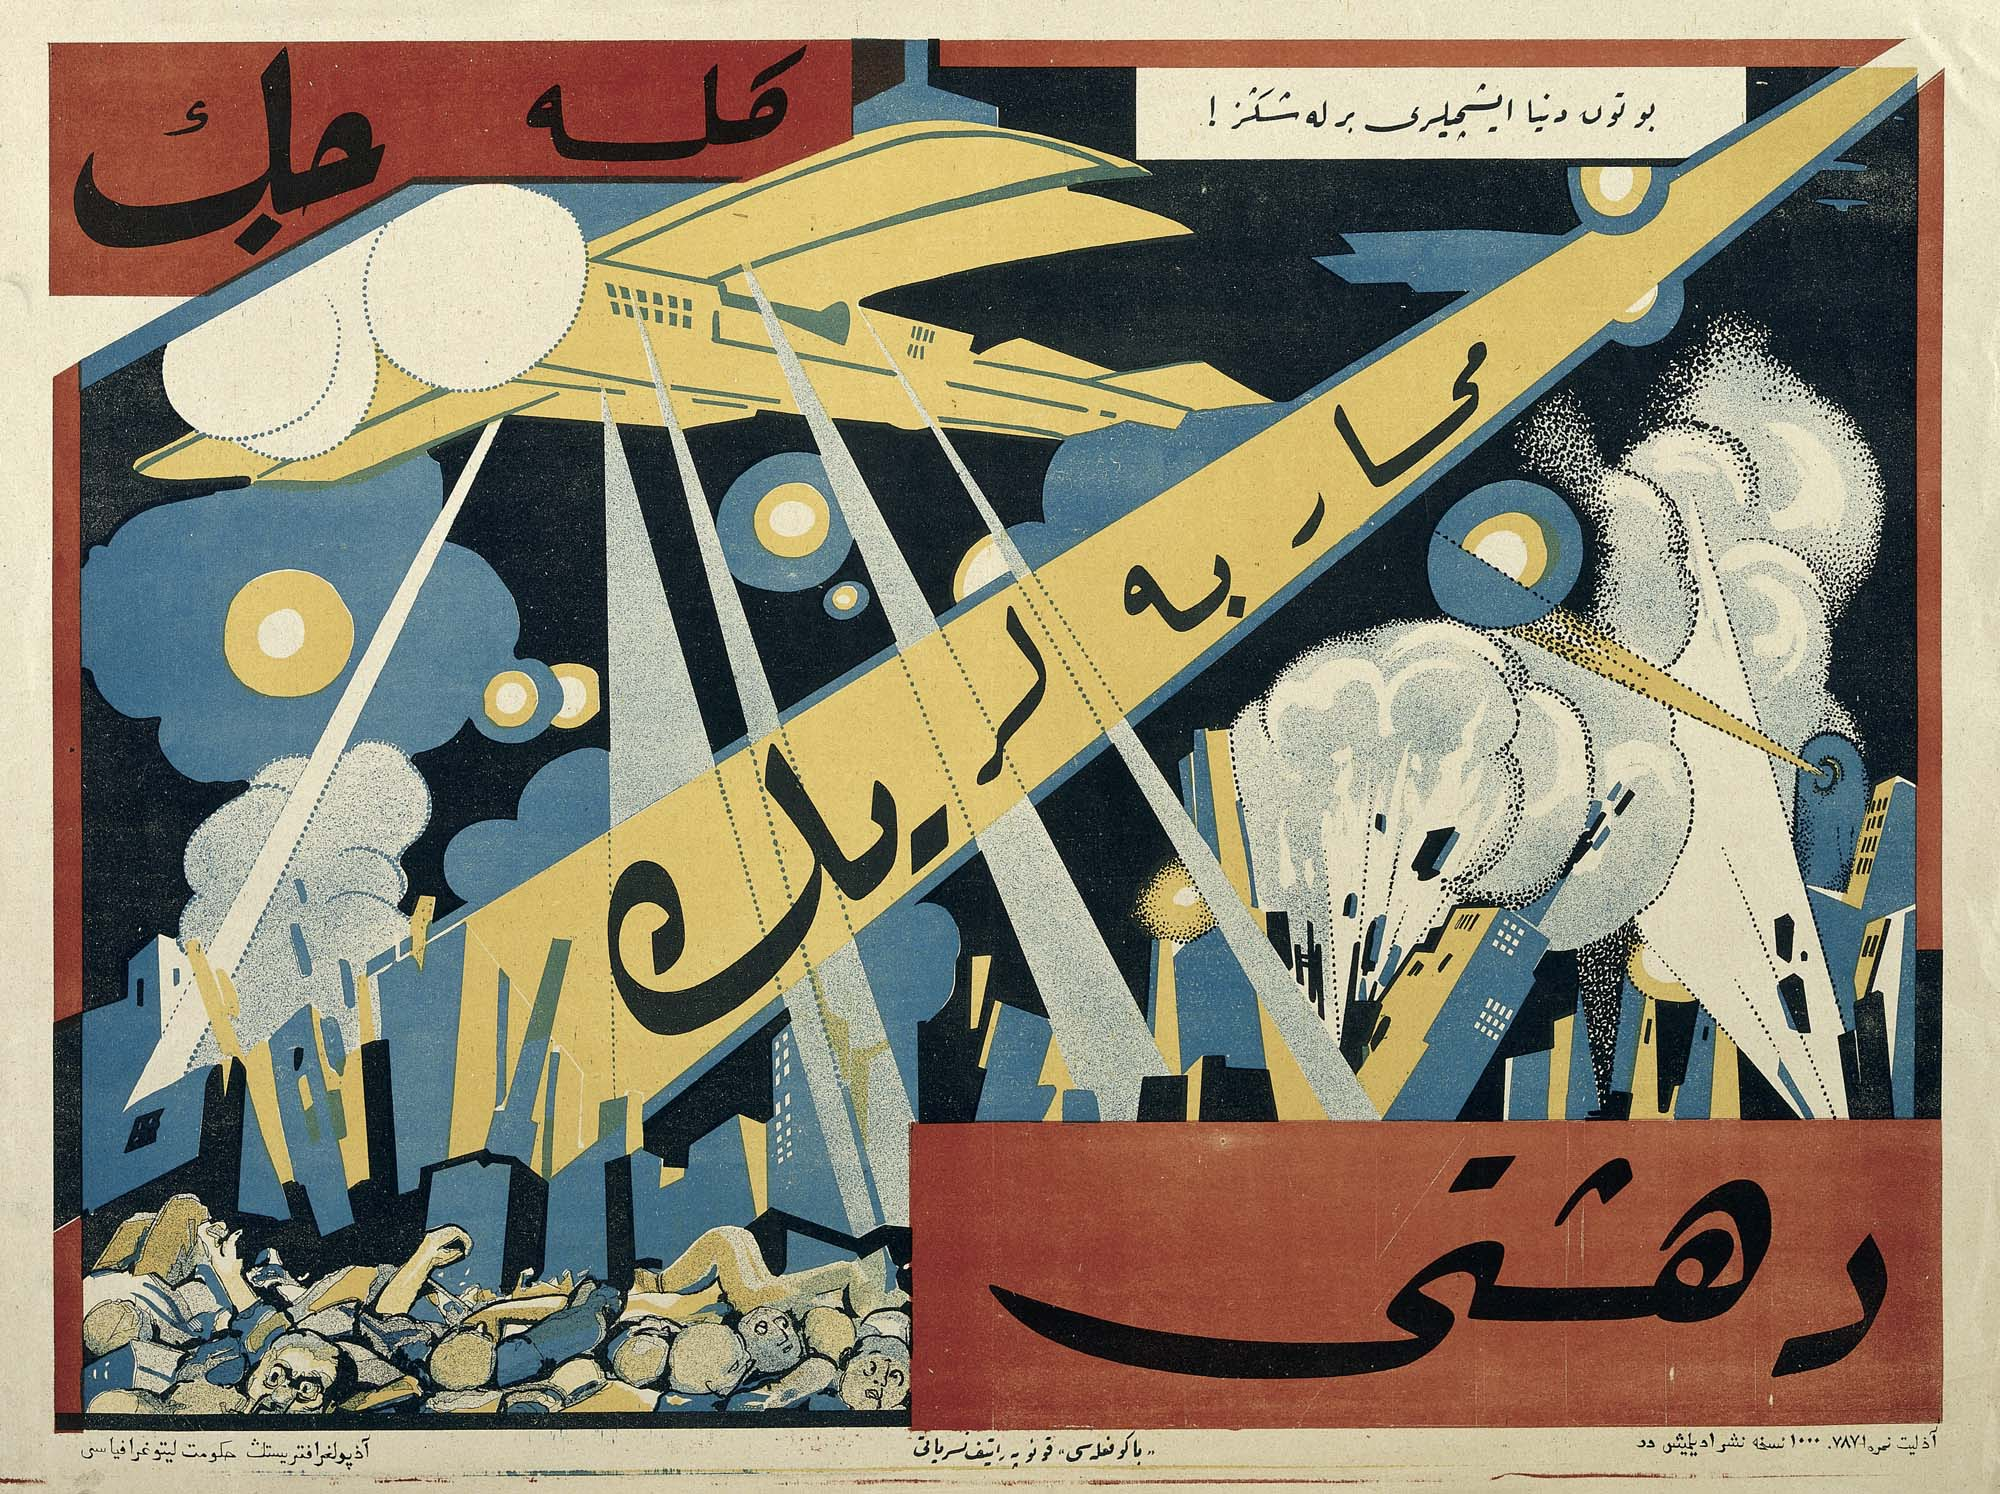 a poster with a graphic treatment of a bomber dropping bombs